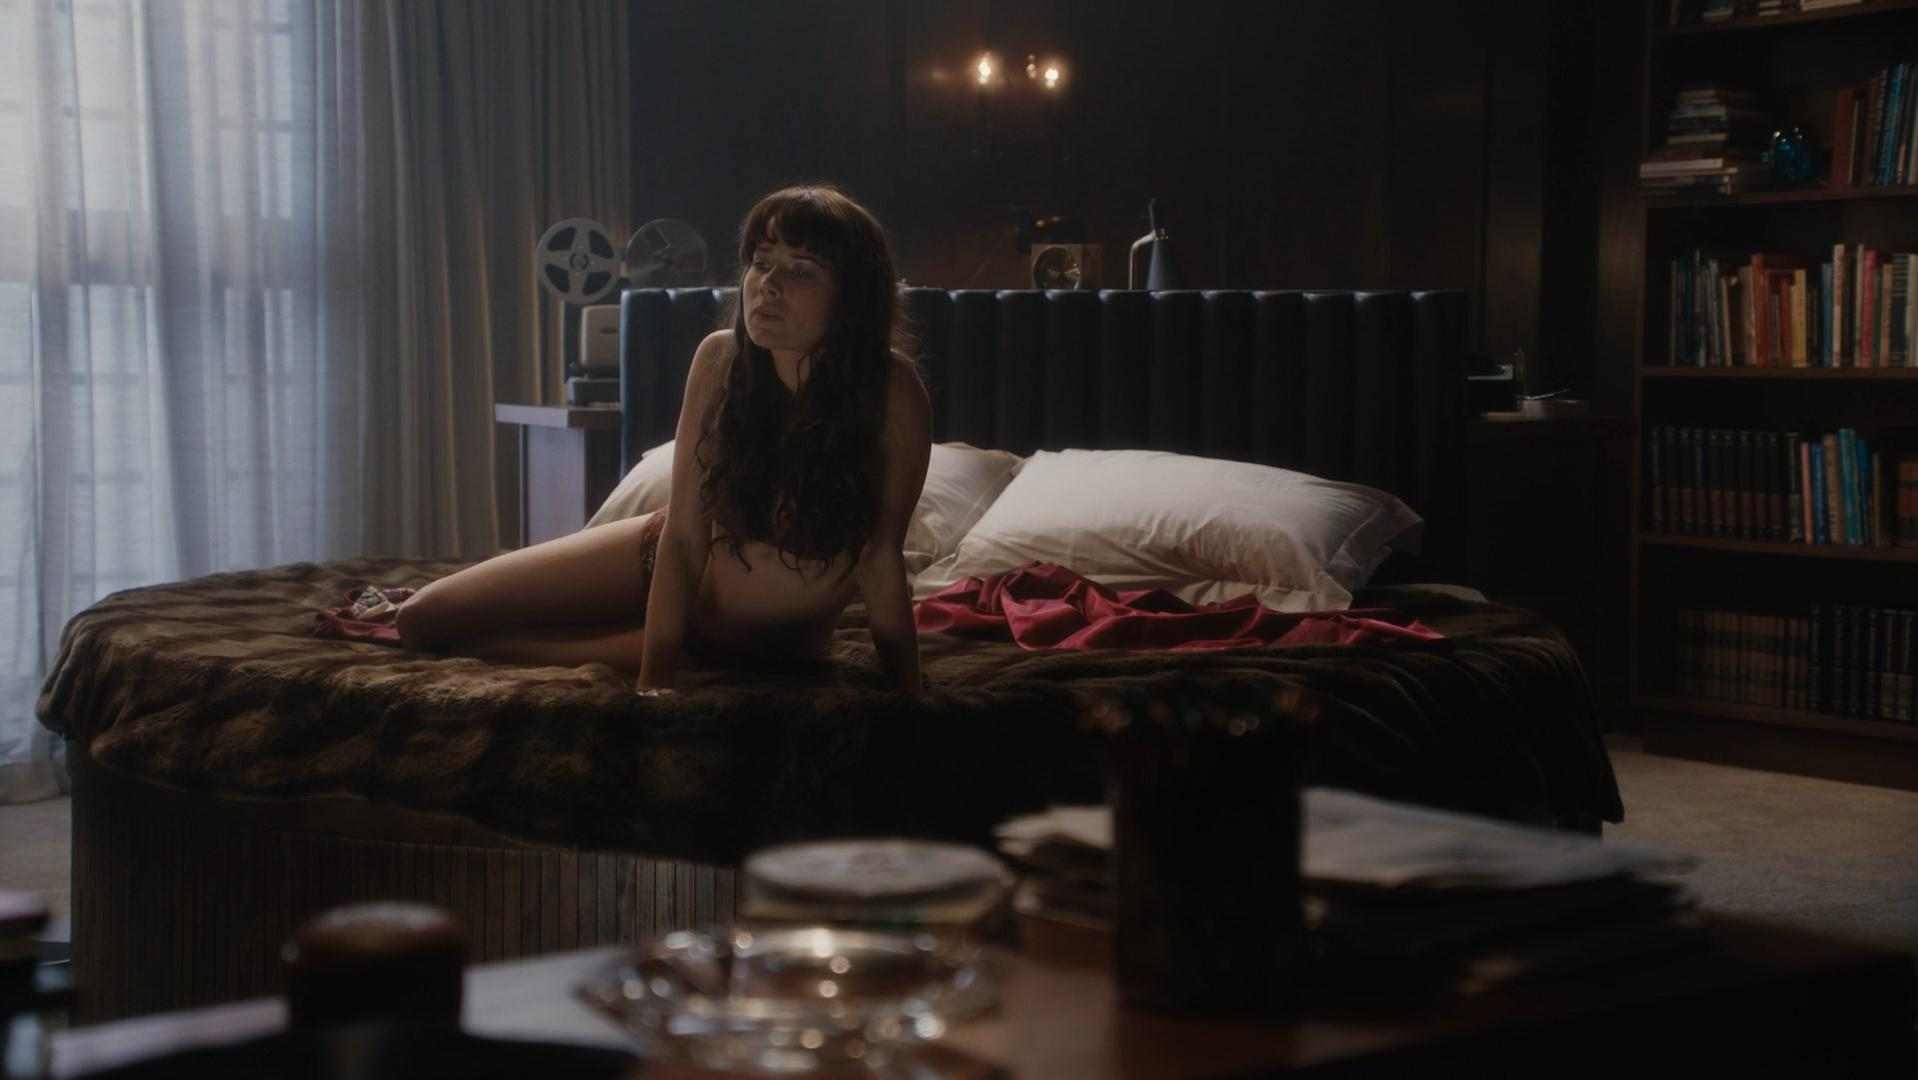 Shara Connolly nude - American Playboy The Hugh Hefner Story s01e06-09 (2017)